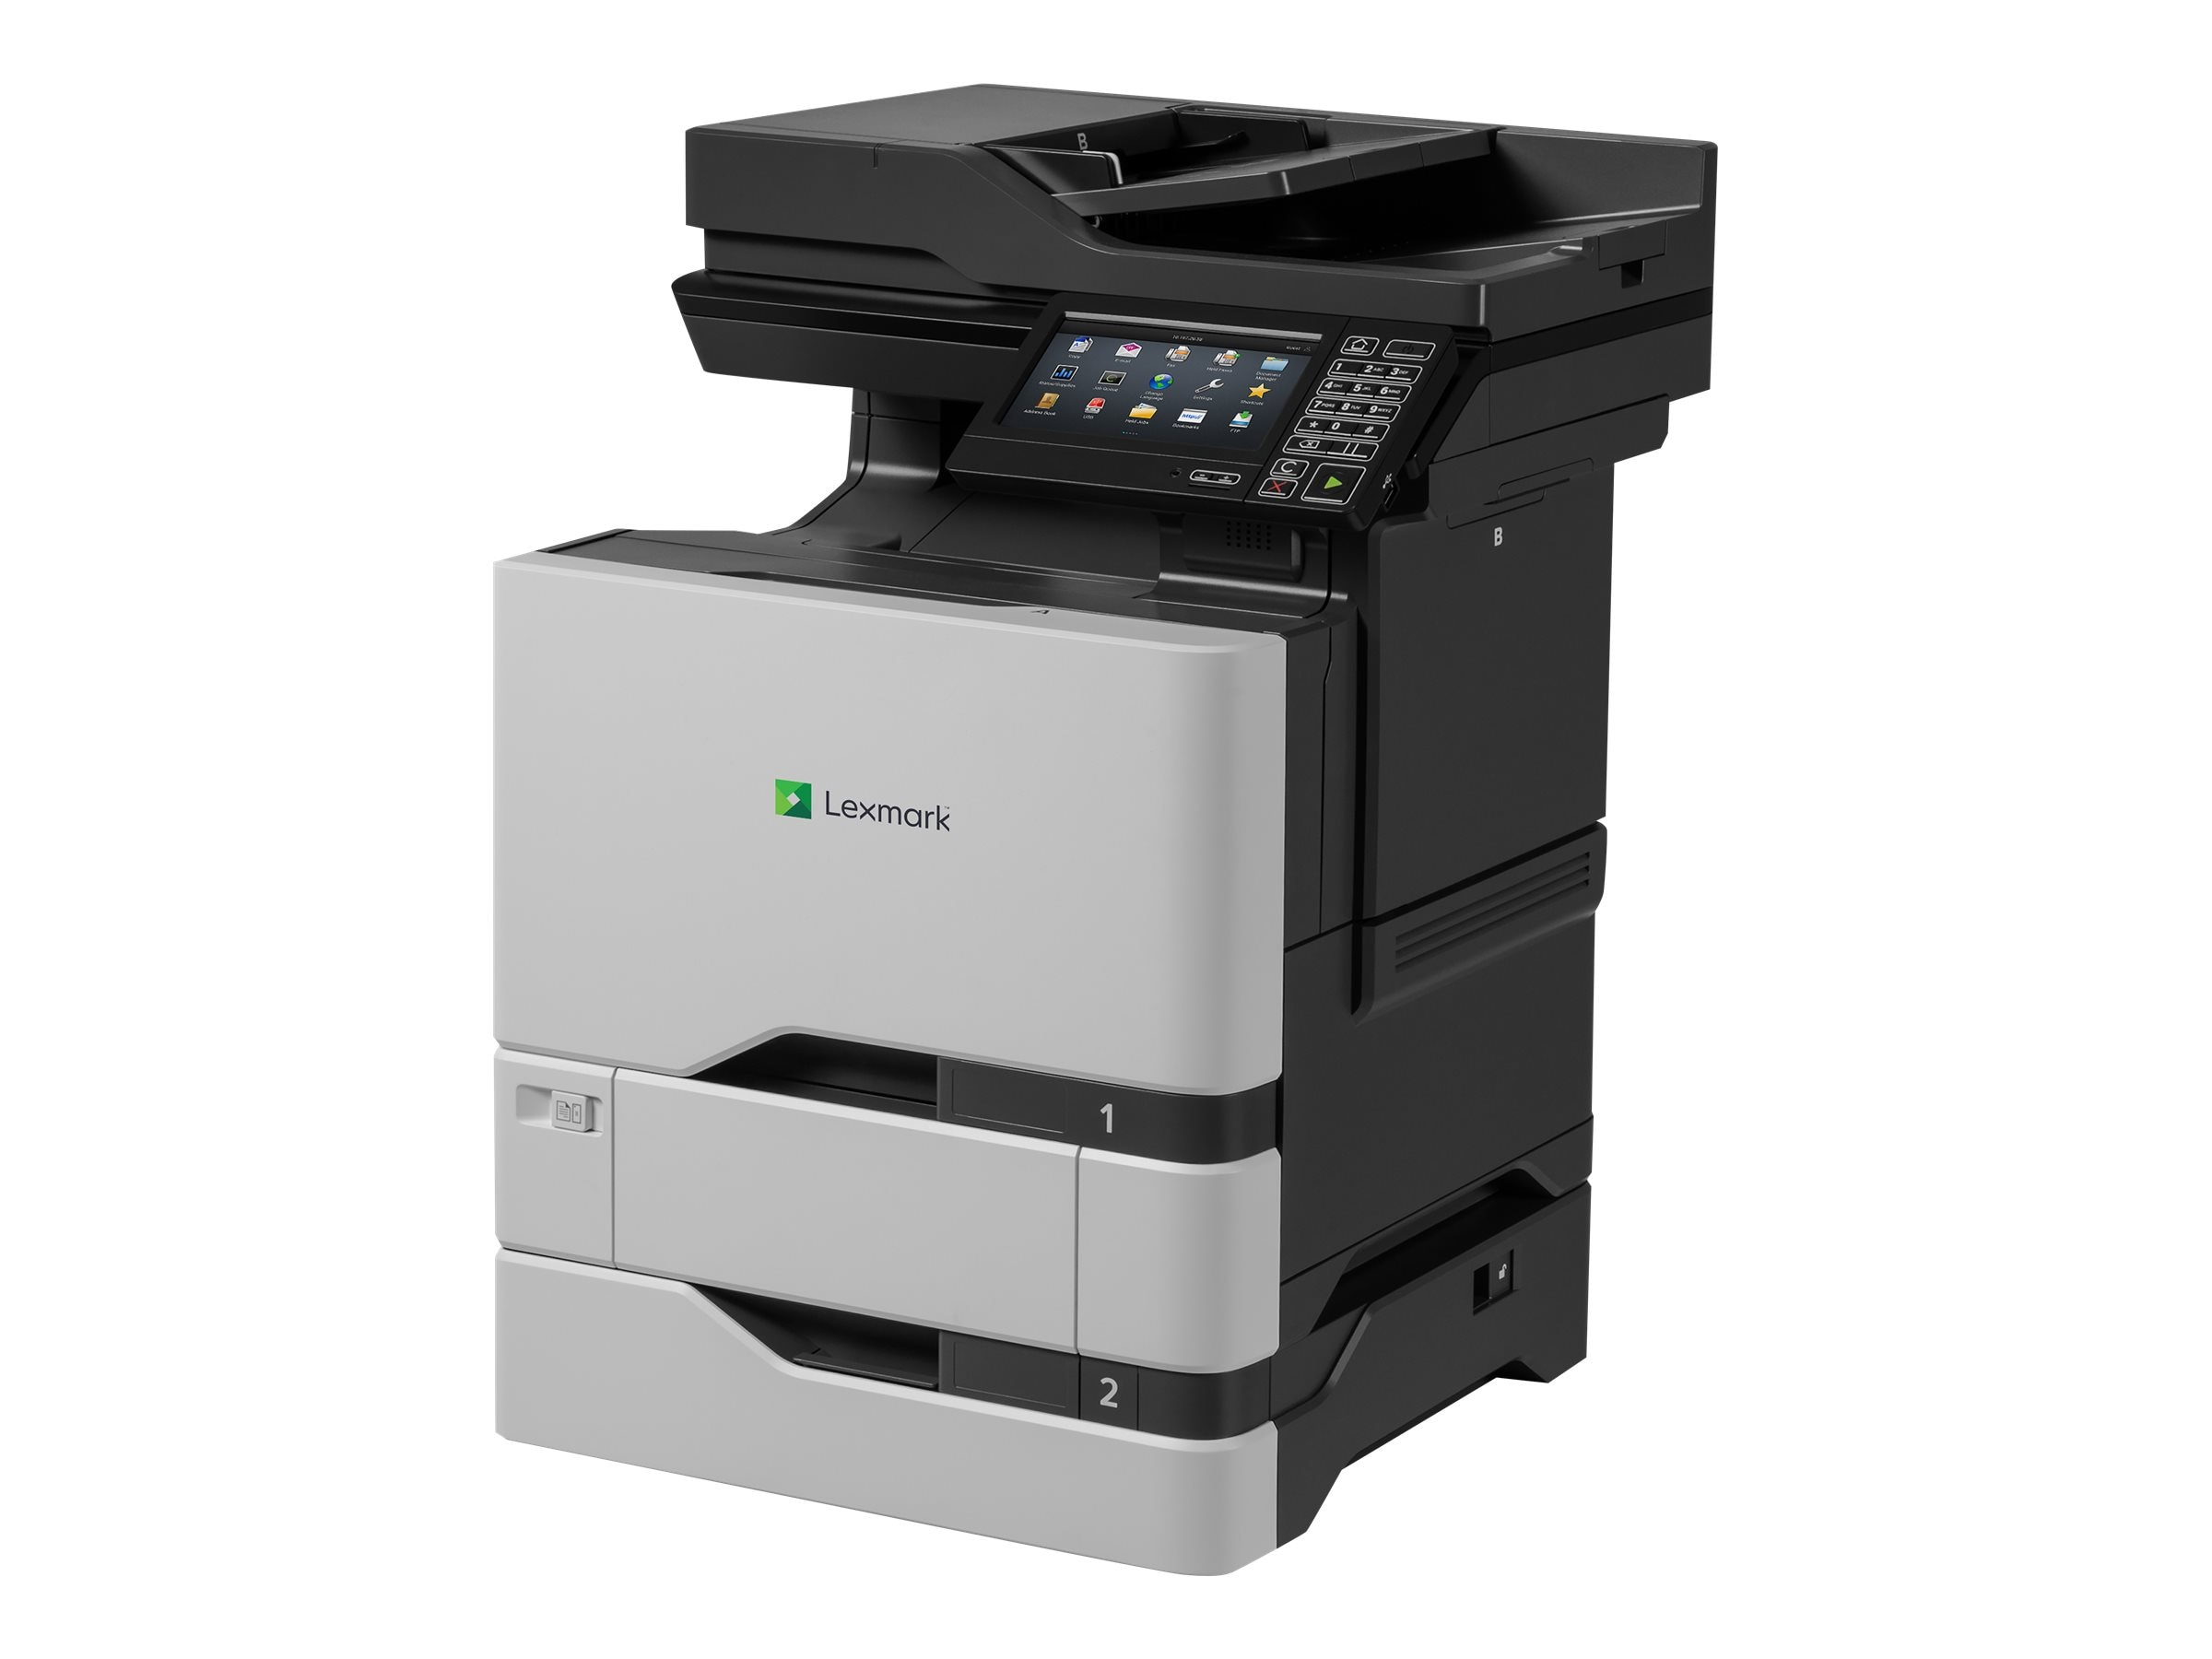 Lexmark CS720dte Color Laser Printer, 40C9101, 31435728, Printers - Laser & LED (color)